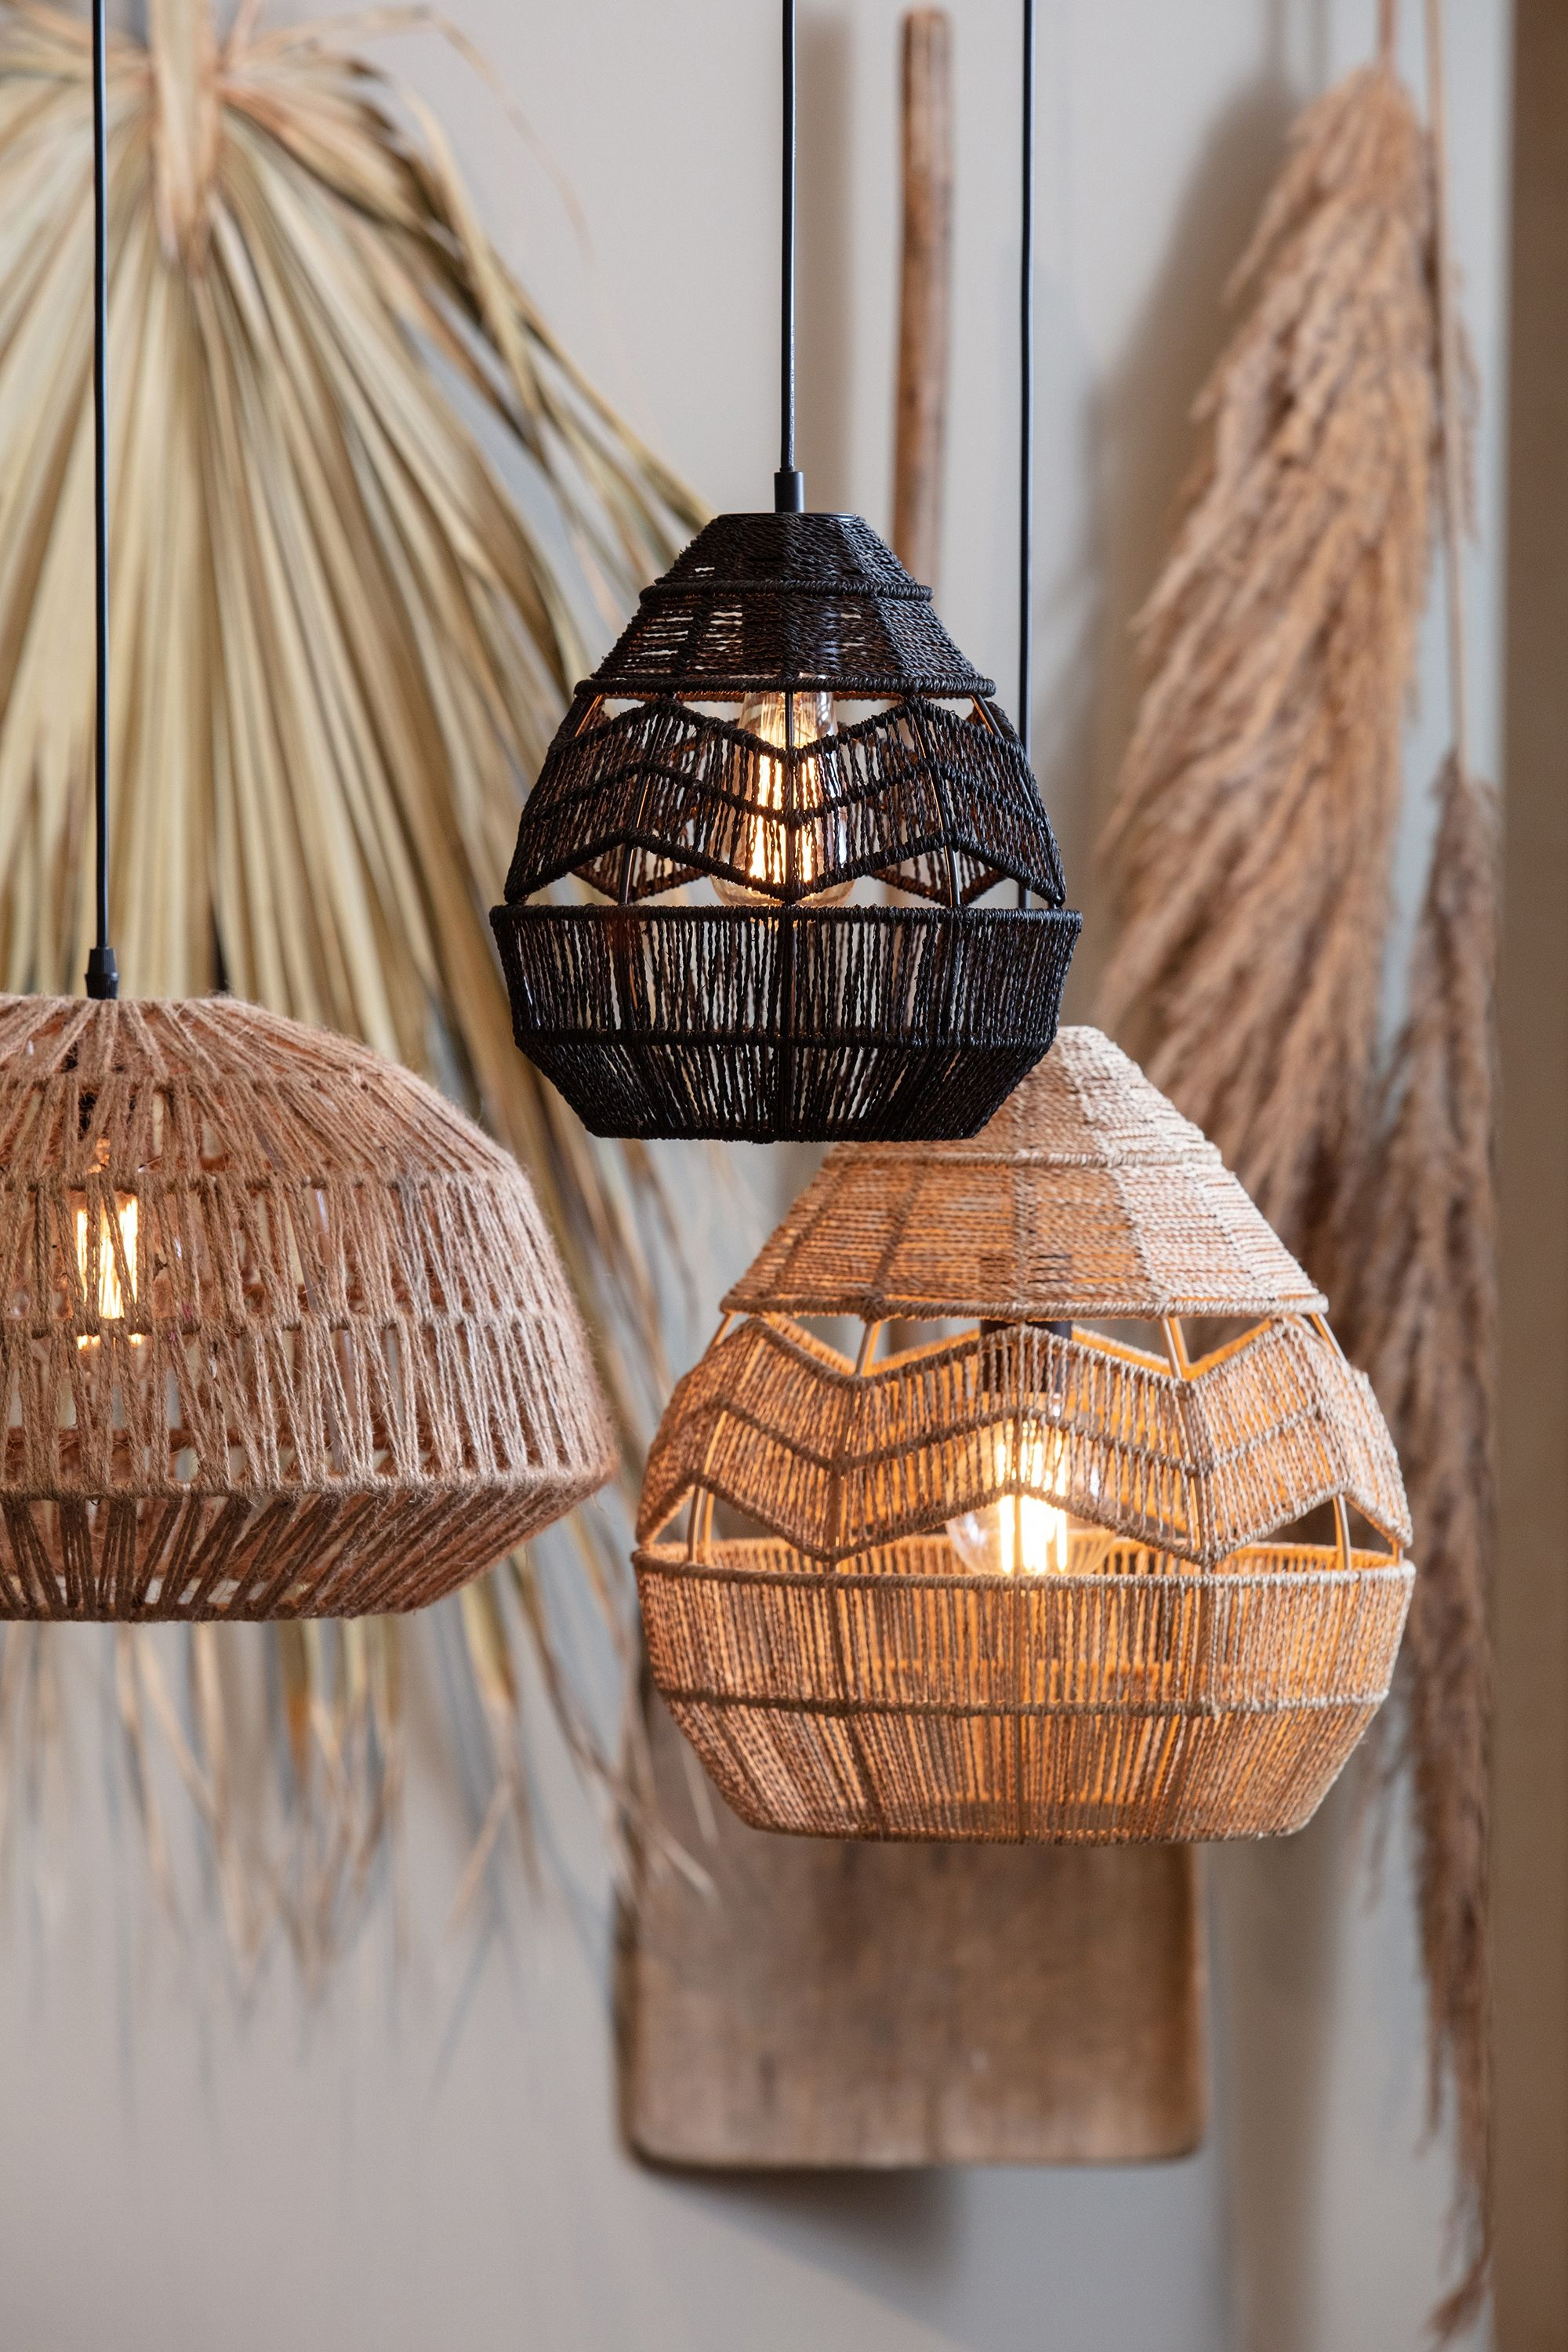 Natural Lighting In 2020 Lamp Pendant Lamp Hanging Lamp